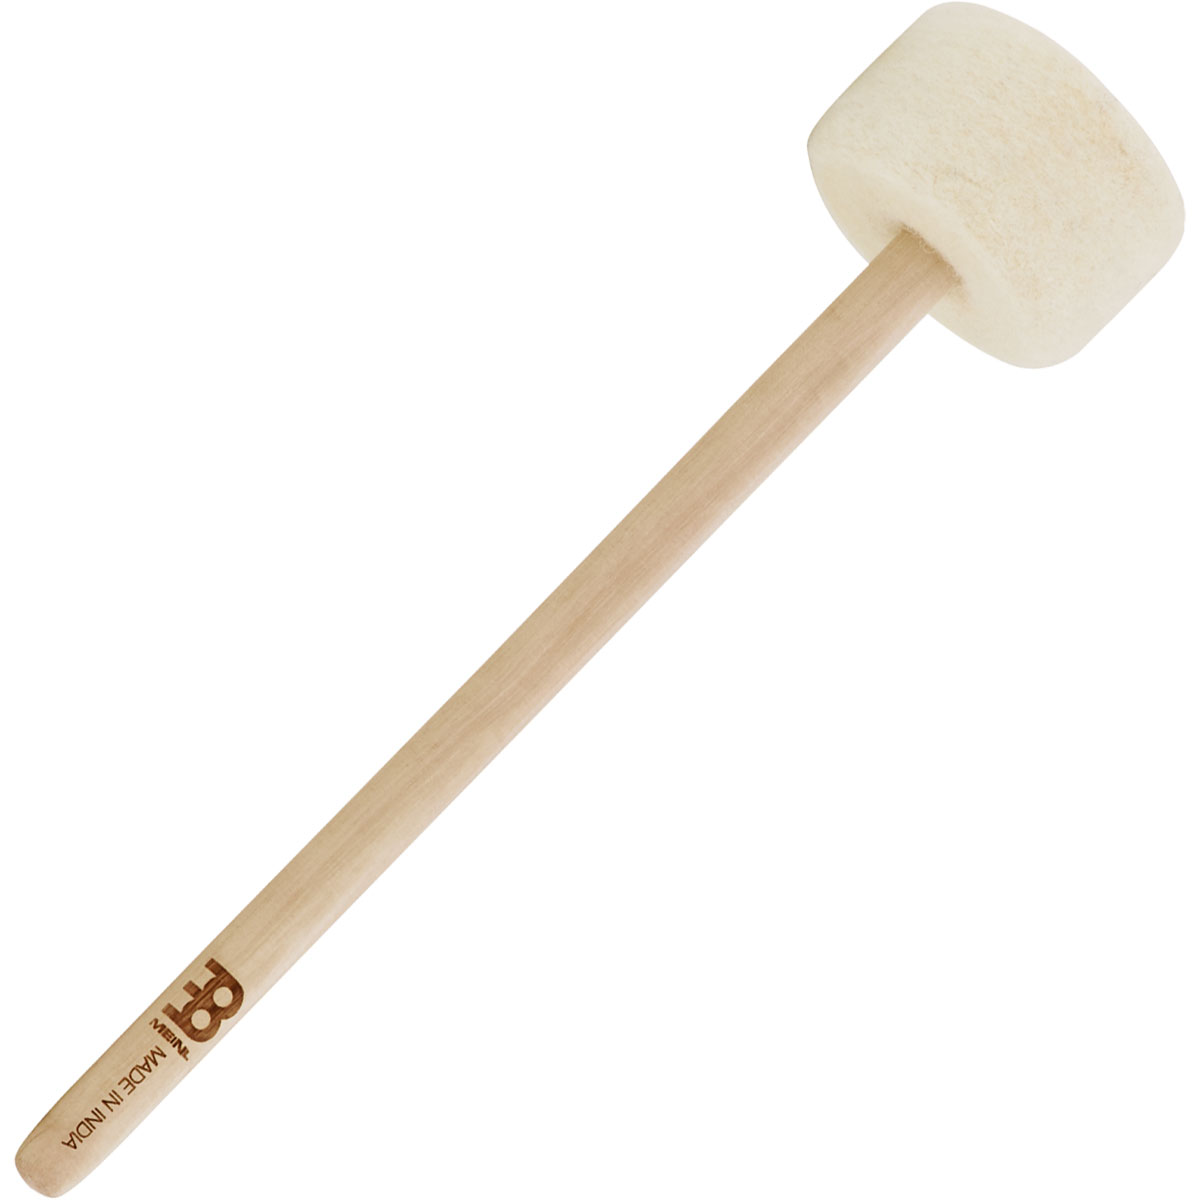 Meinl Large Tip Singing Bowl Mallet with Small Handle